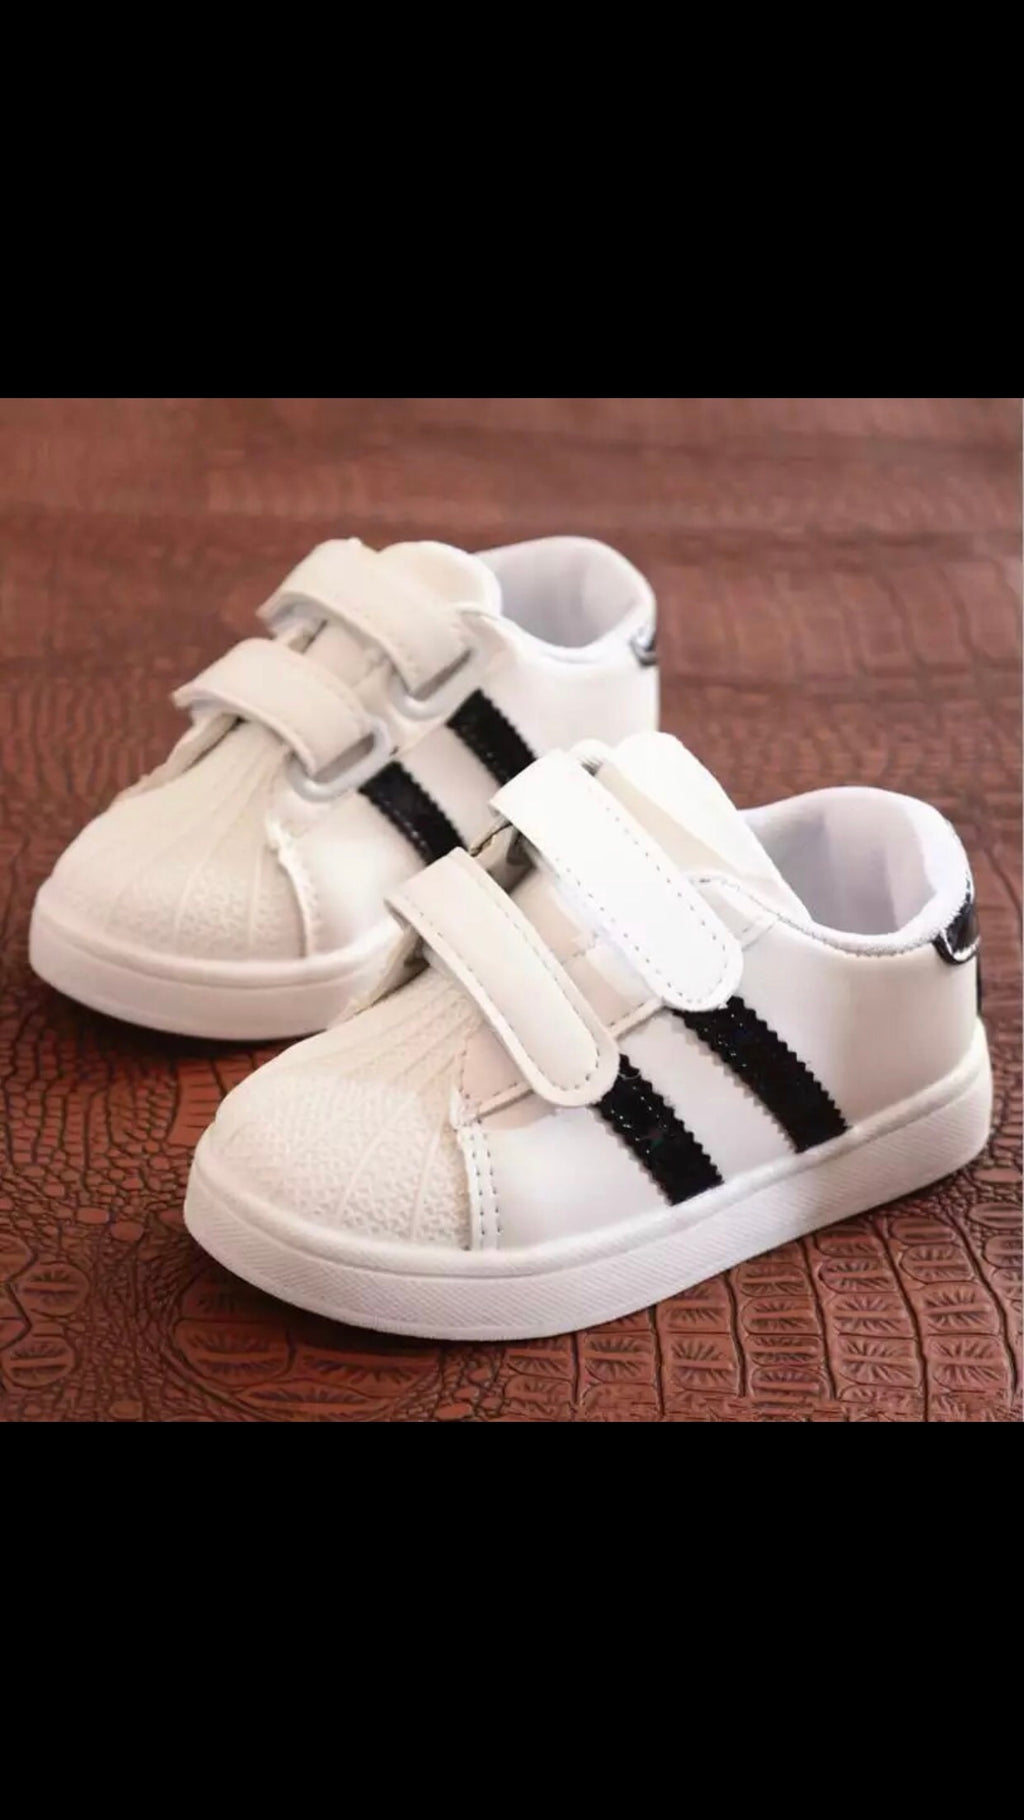 Children's-Shoes-Striped-Hard-Sole-Shoes-Black